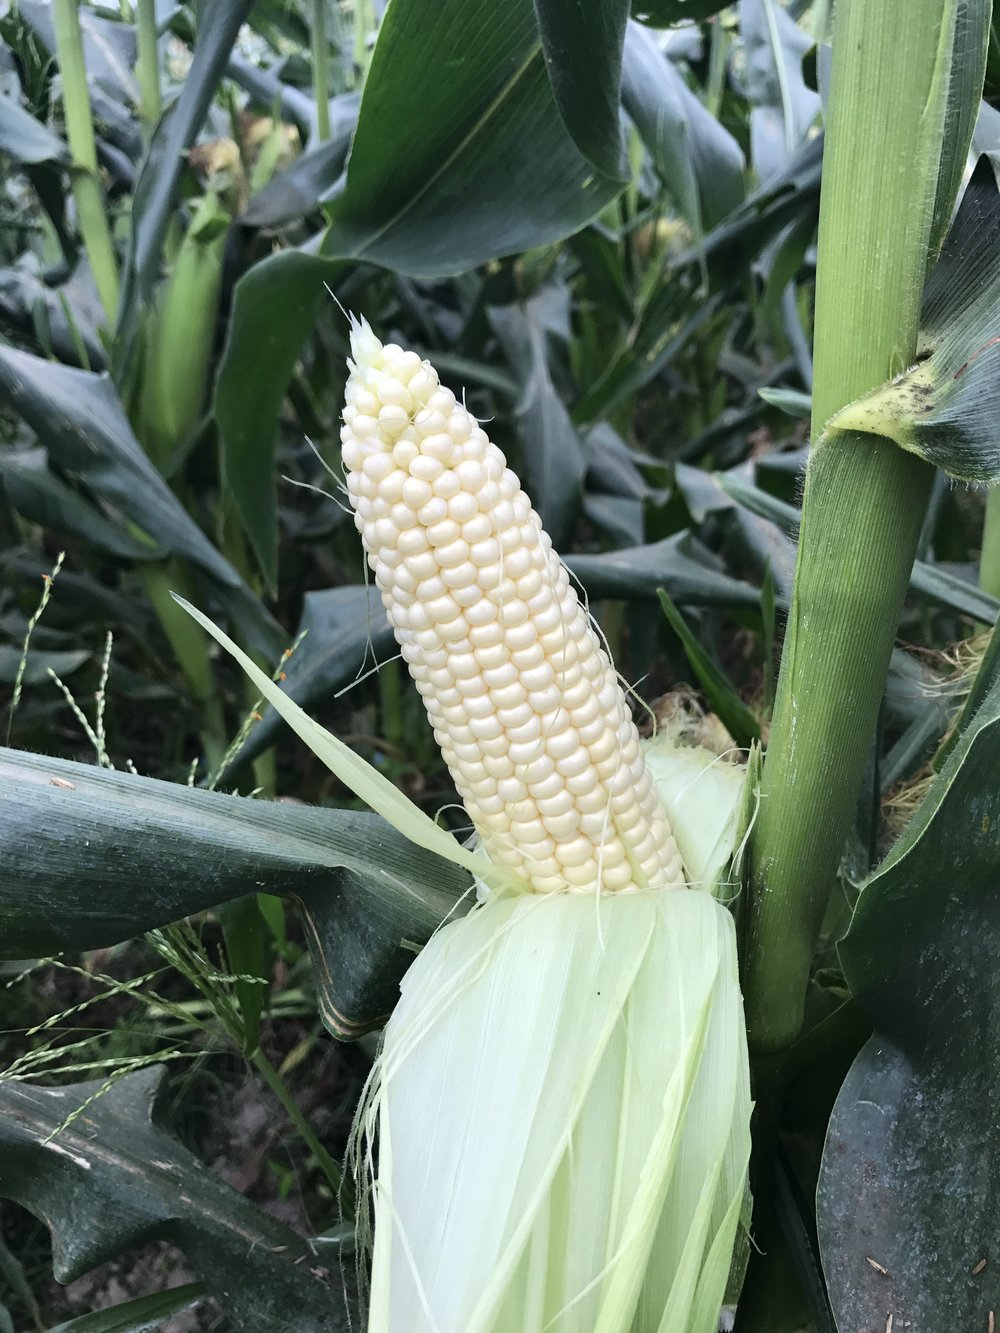 Florida Fresh Winter White Sweet Corn on stalk